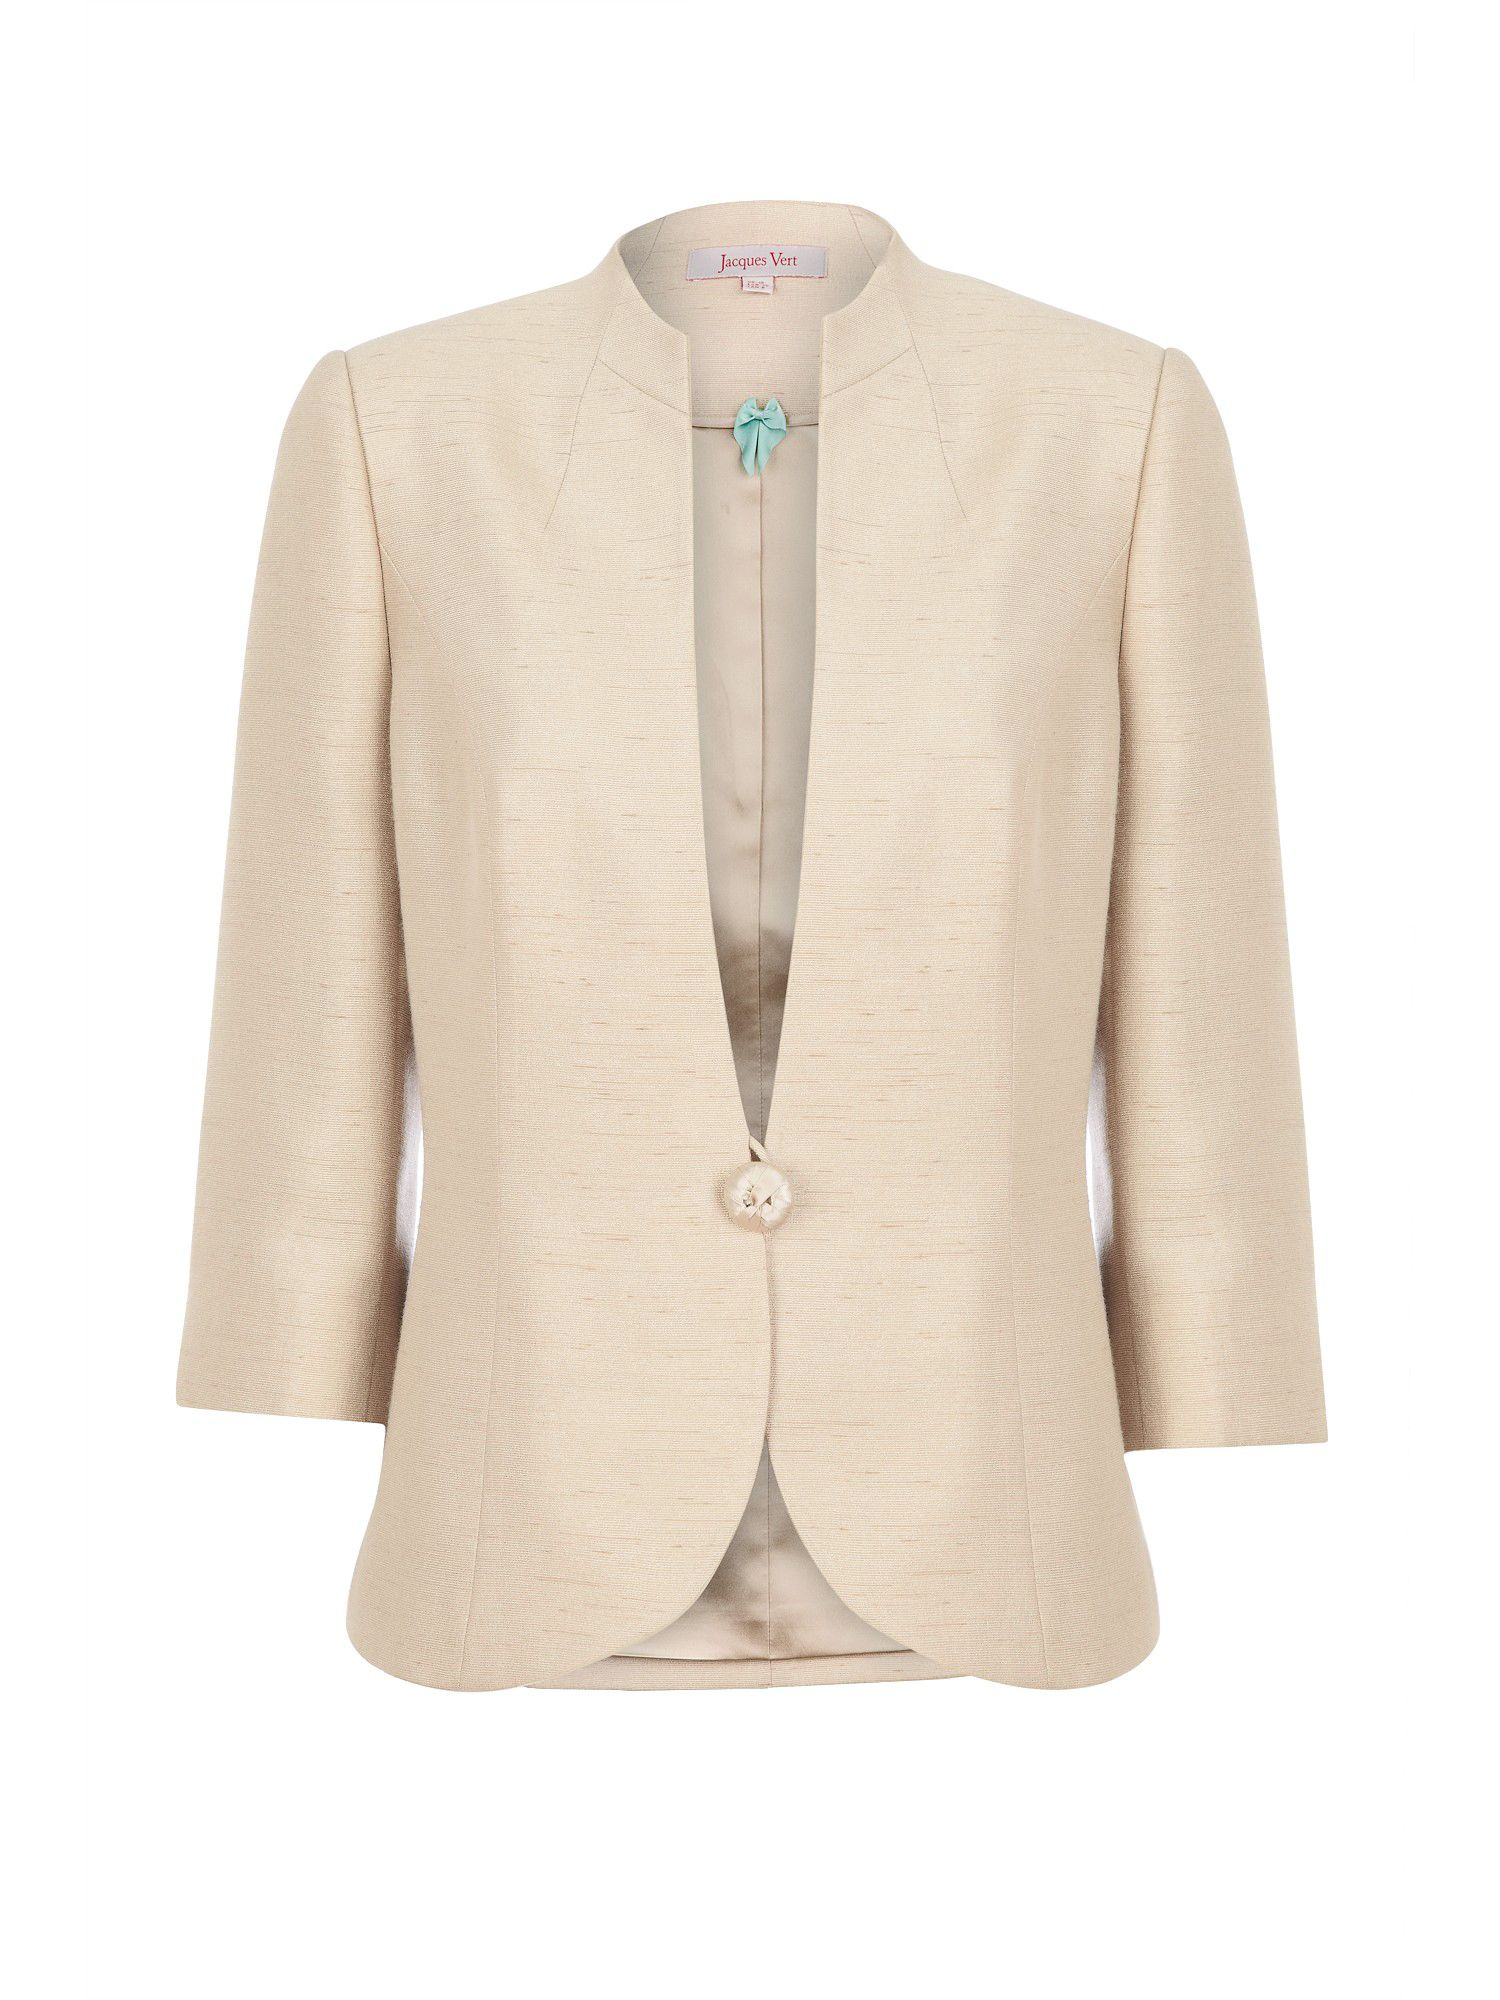 Brulee short jacket